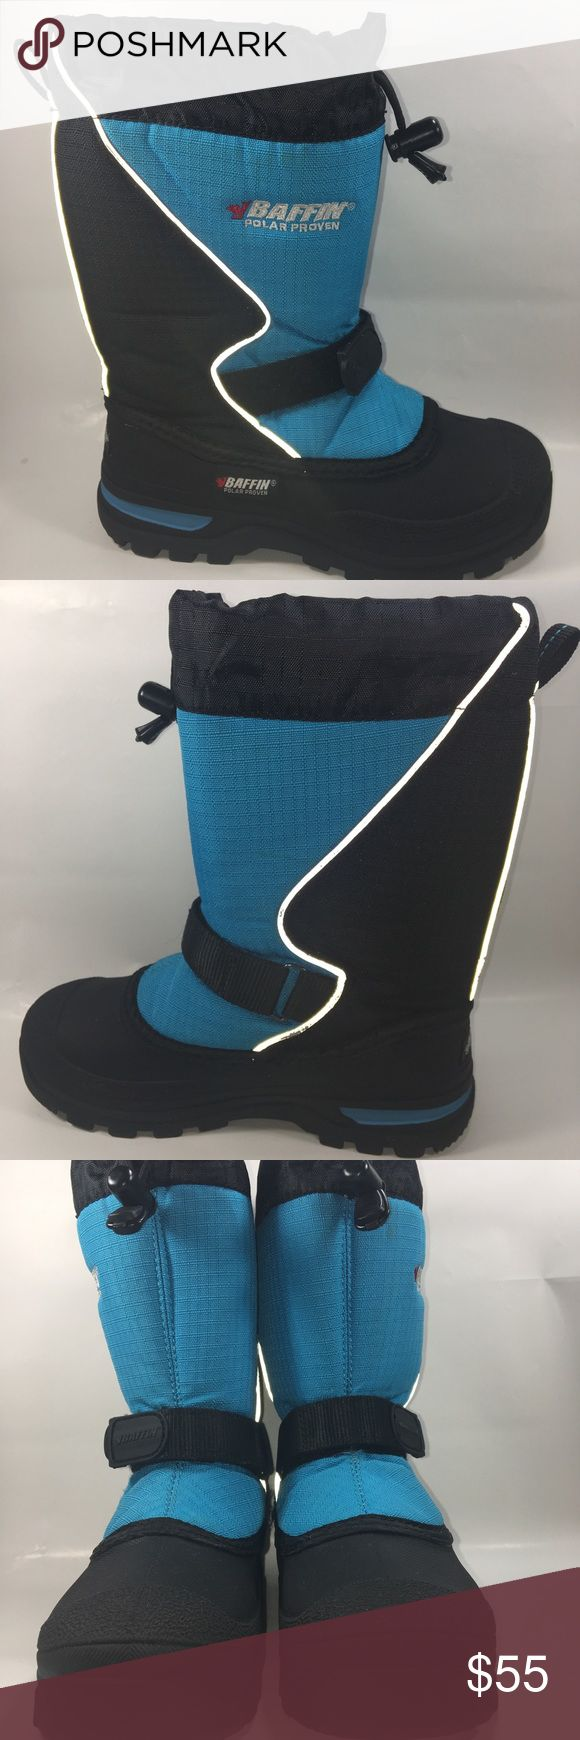 Baffin Blue & Black Mustang Juniors Snow Boots Excellent Condition Some Normal Wear See Pictures. Baffin Blue & Black Mustang Juniors Snow Boots Size 3 Shoe #S158 Baffin Shoes Rain & Snow Boots